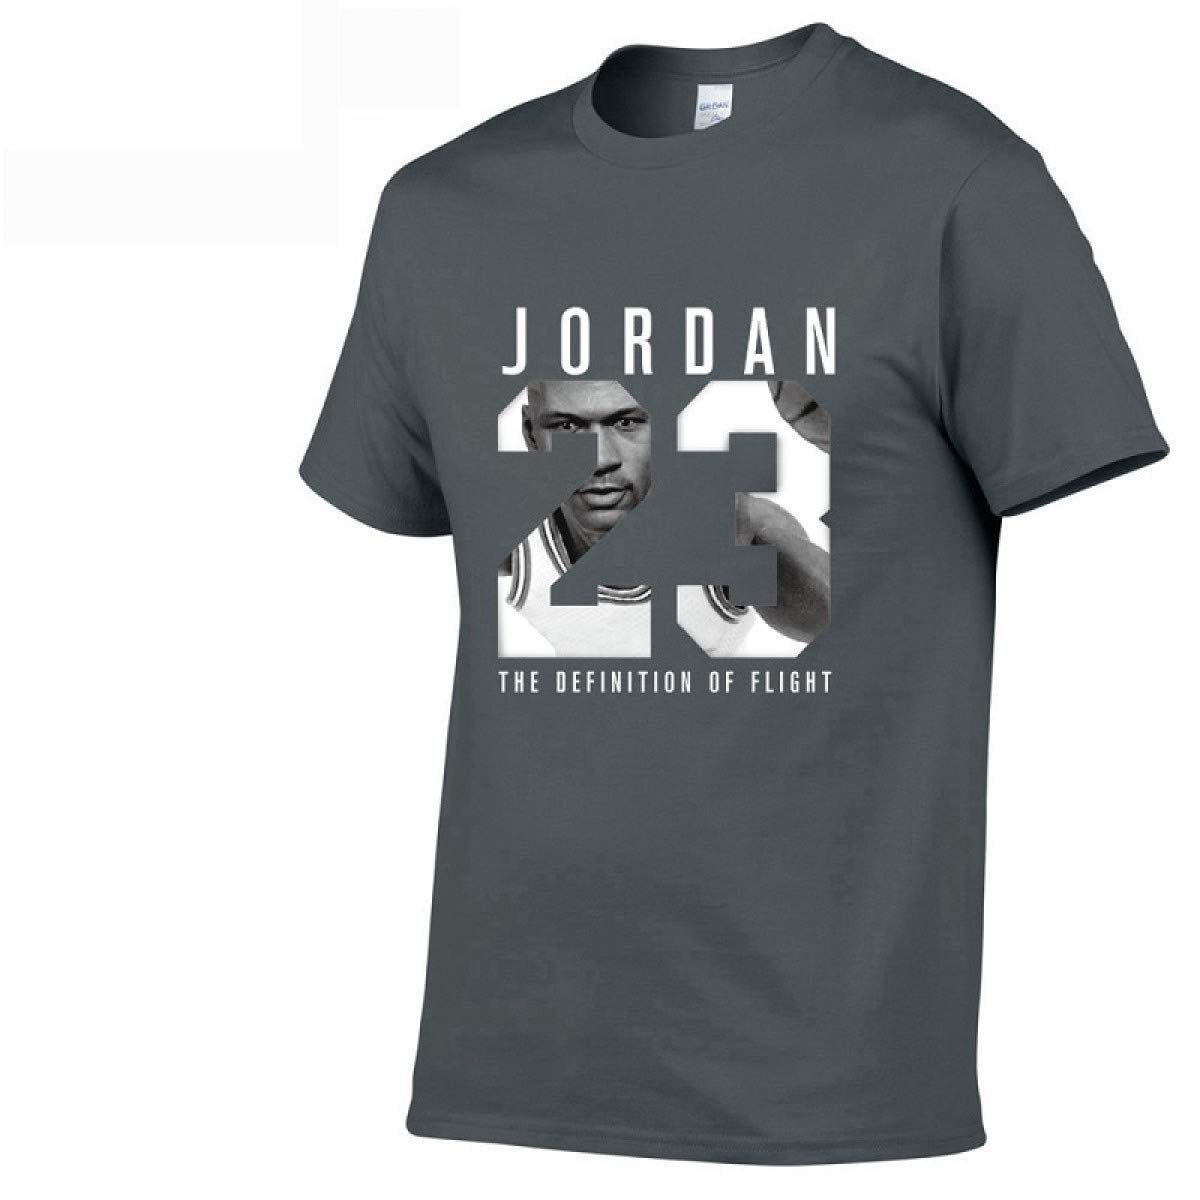 cb5b43f44234e5 Amazon.com  Jordan t Shirts Jordan 23 Men T-Shirt Swag T-Shirt Cotton Print  Men T Shirt  Clothing